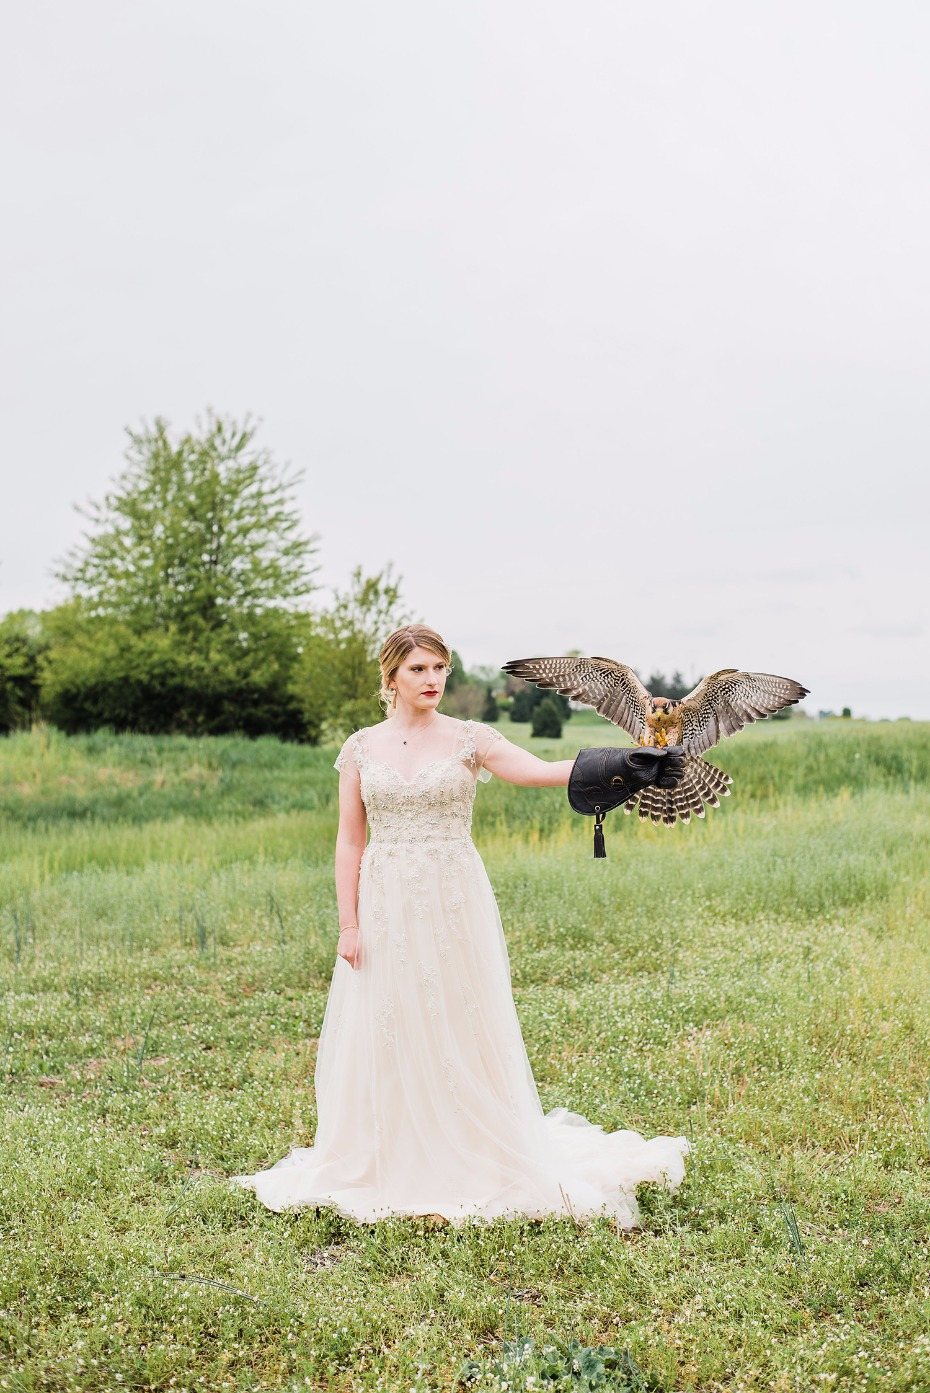 Falcon and the bride